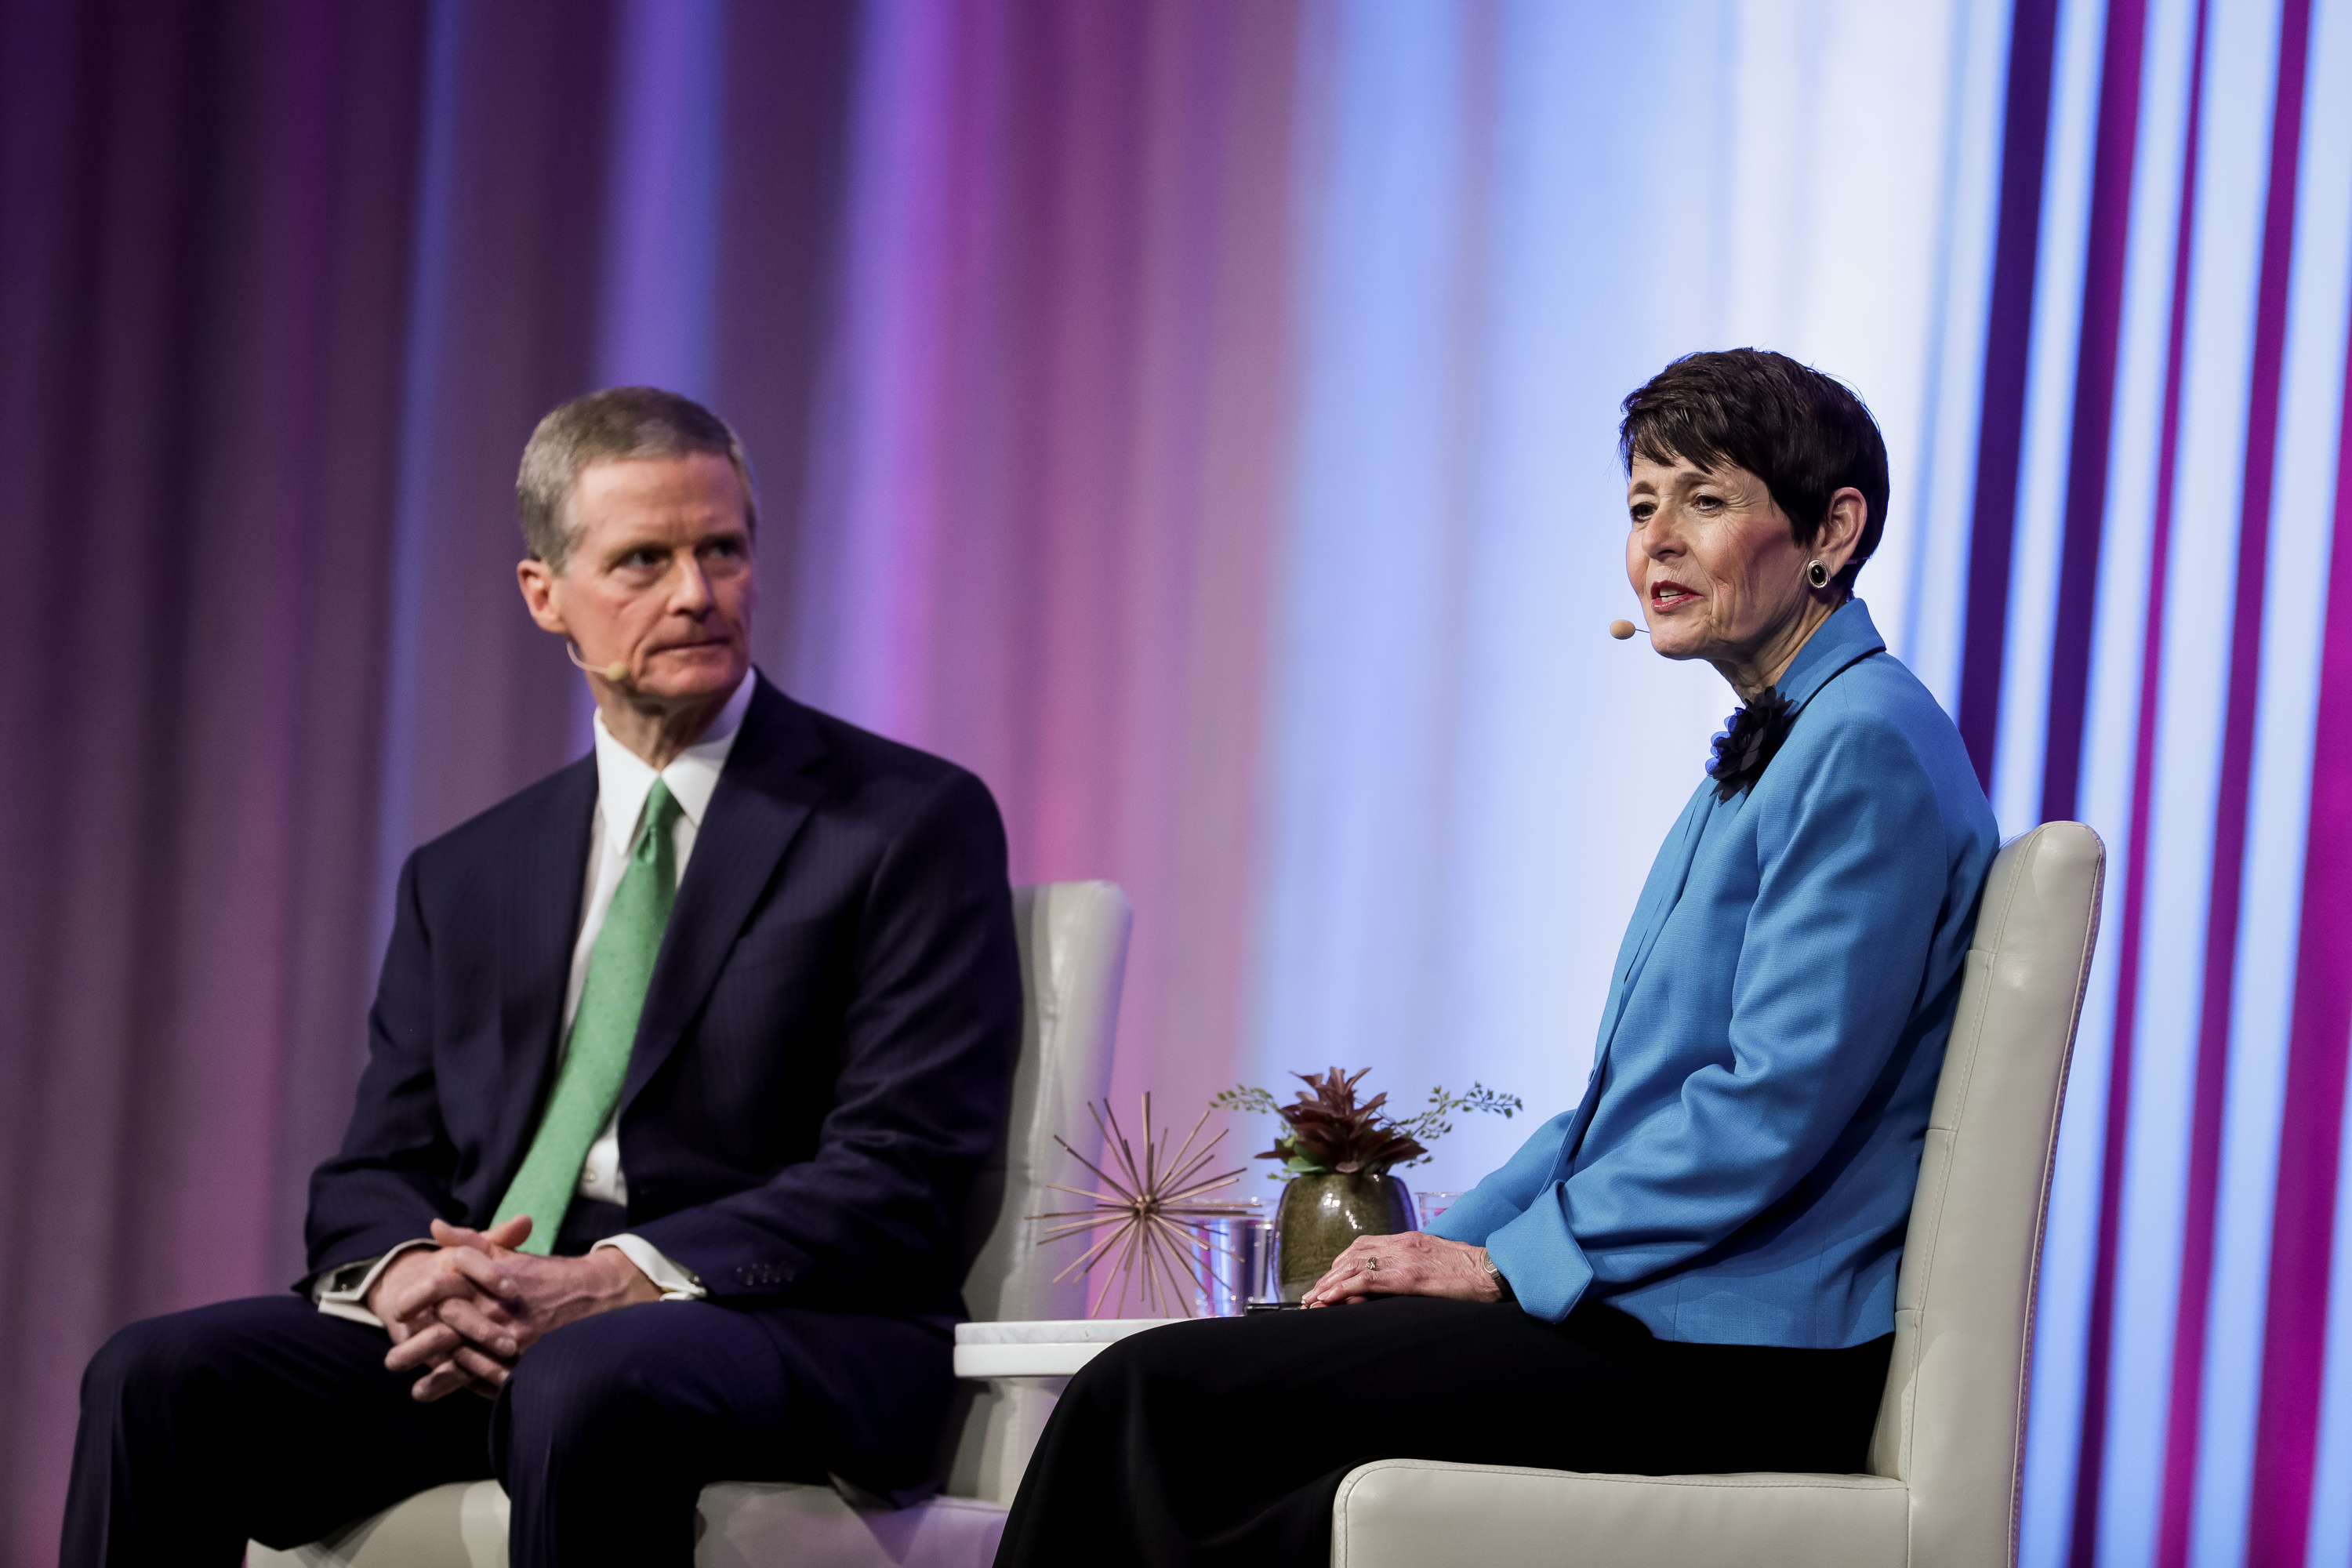 Elder David A. Bednar of the Quorum of the Twelve Apostles and his wife, Sister Susan Bednar, speak during the RootsTech conference, held at the Salt Palace in Salt Lake City on Saturday, March 2, 2019.